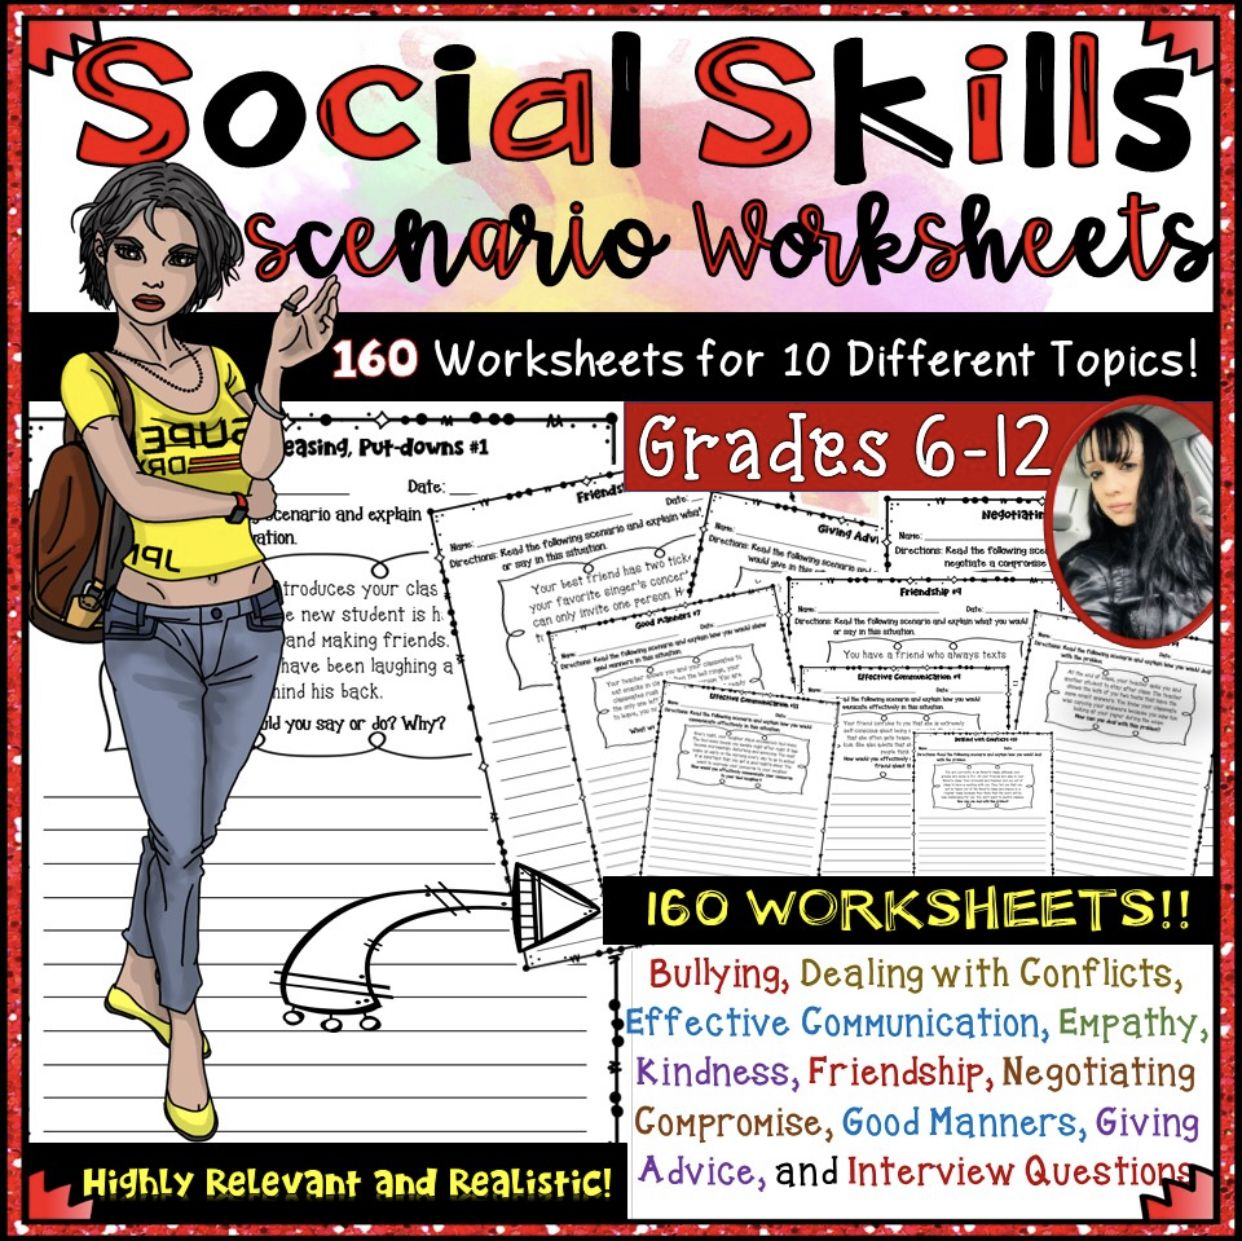 Social Skills Scenario Worksheets 192 Worksheets